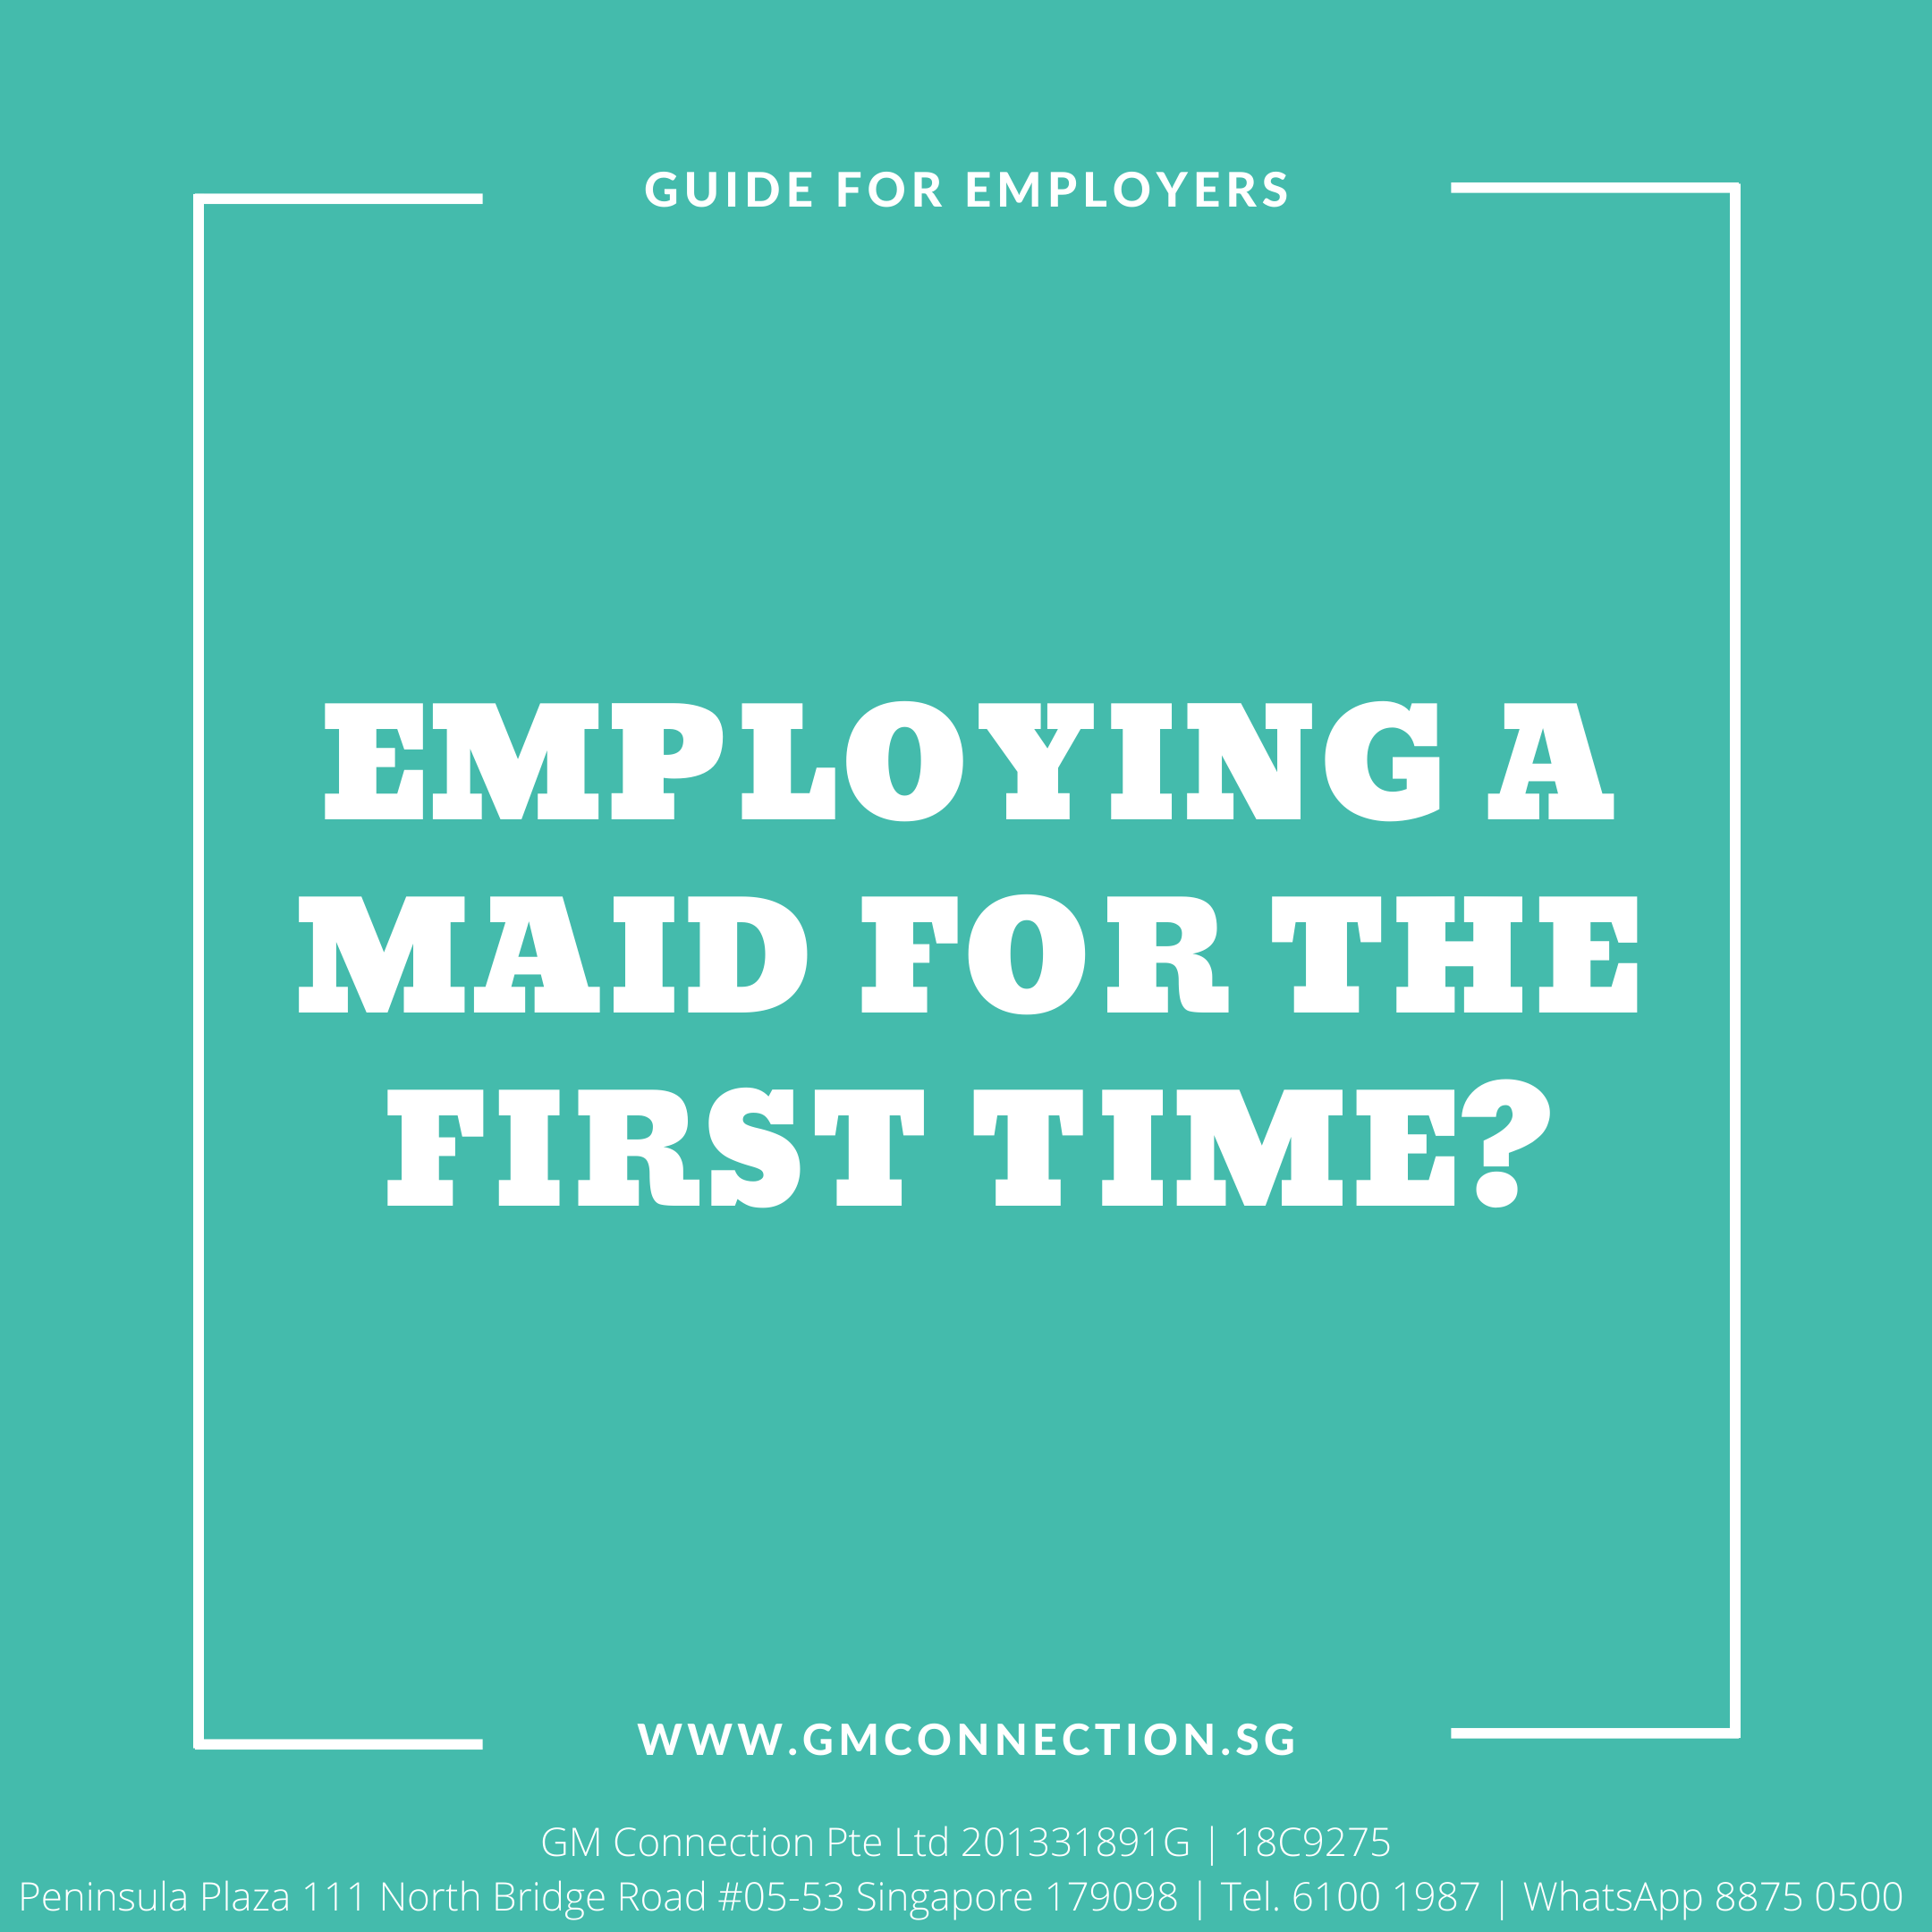 First Time Employing a Maid?